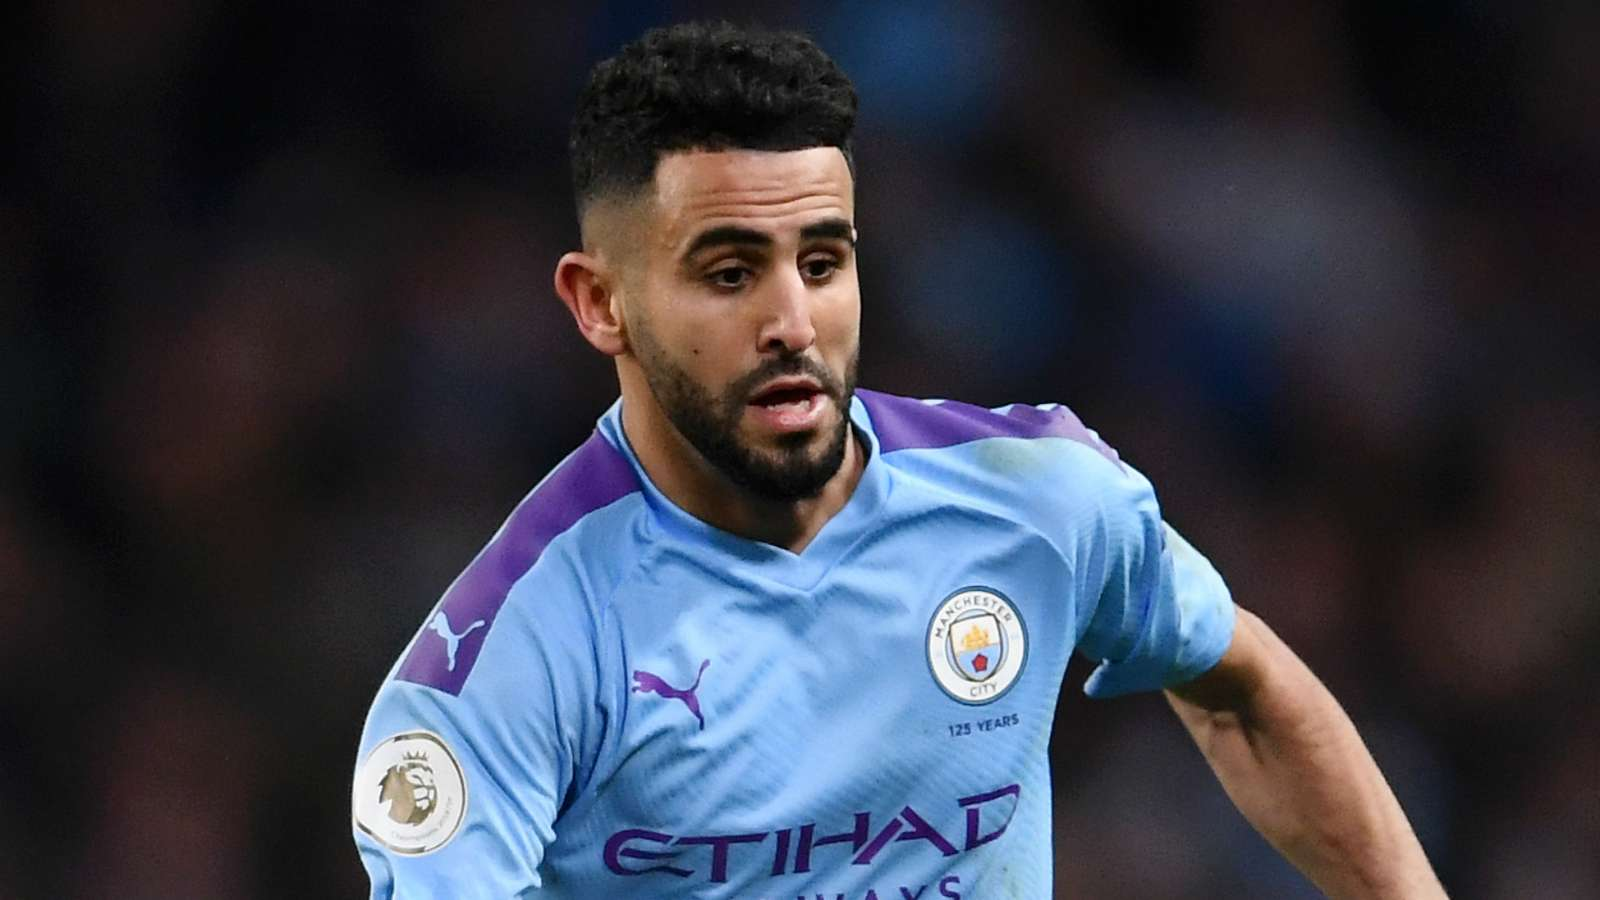 Man City have everything needed to win the Champions League, says Mahrez - Bóng Đá